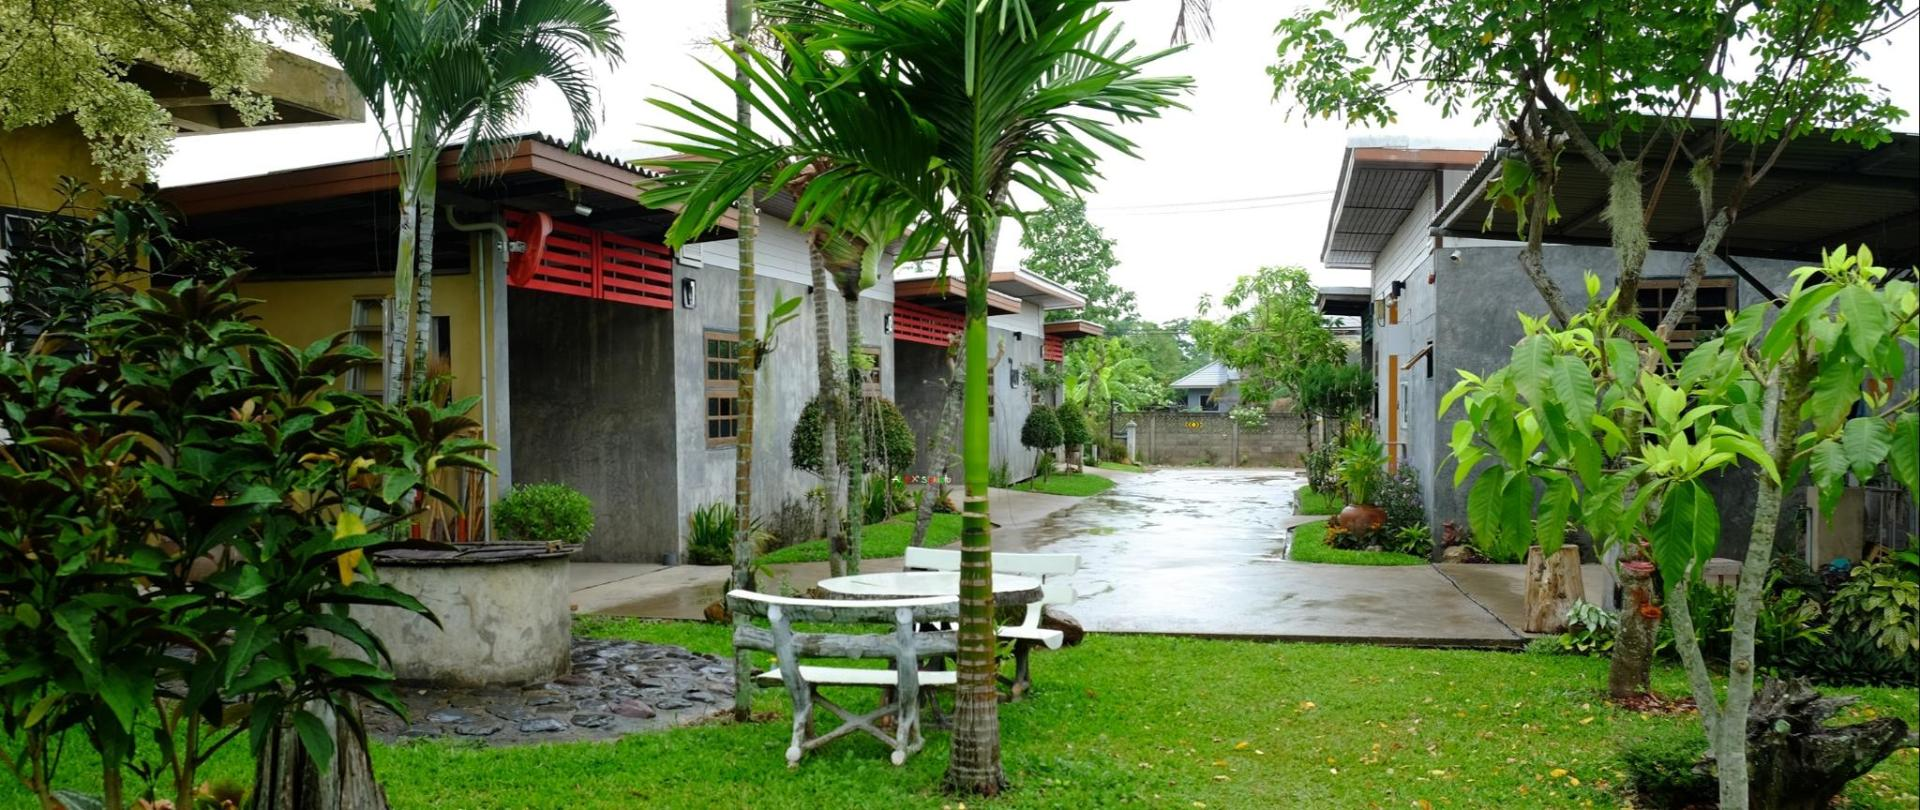 The rainy season in June/ Secured Paraking/ Property Building/ Entrance